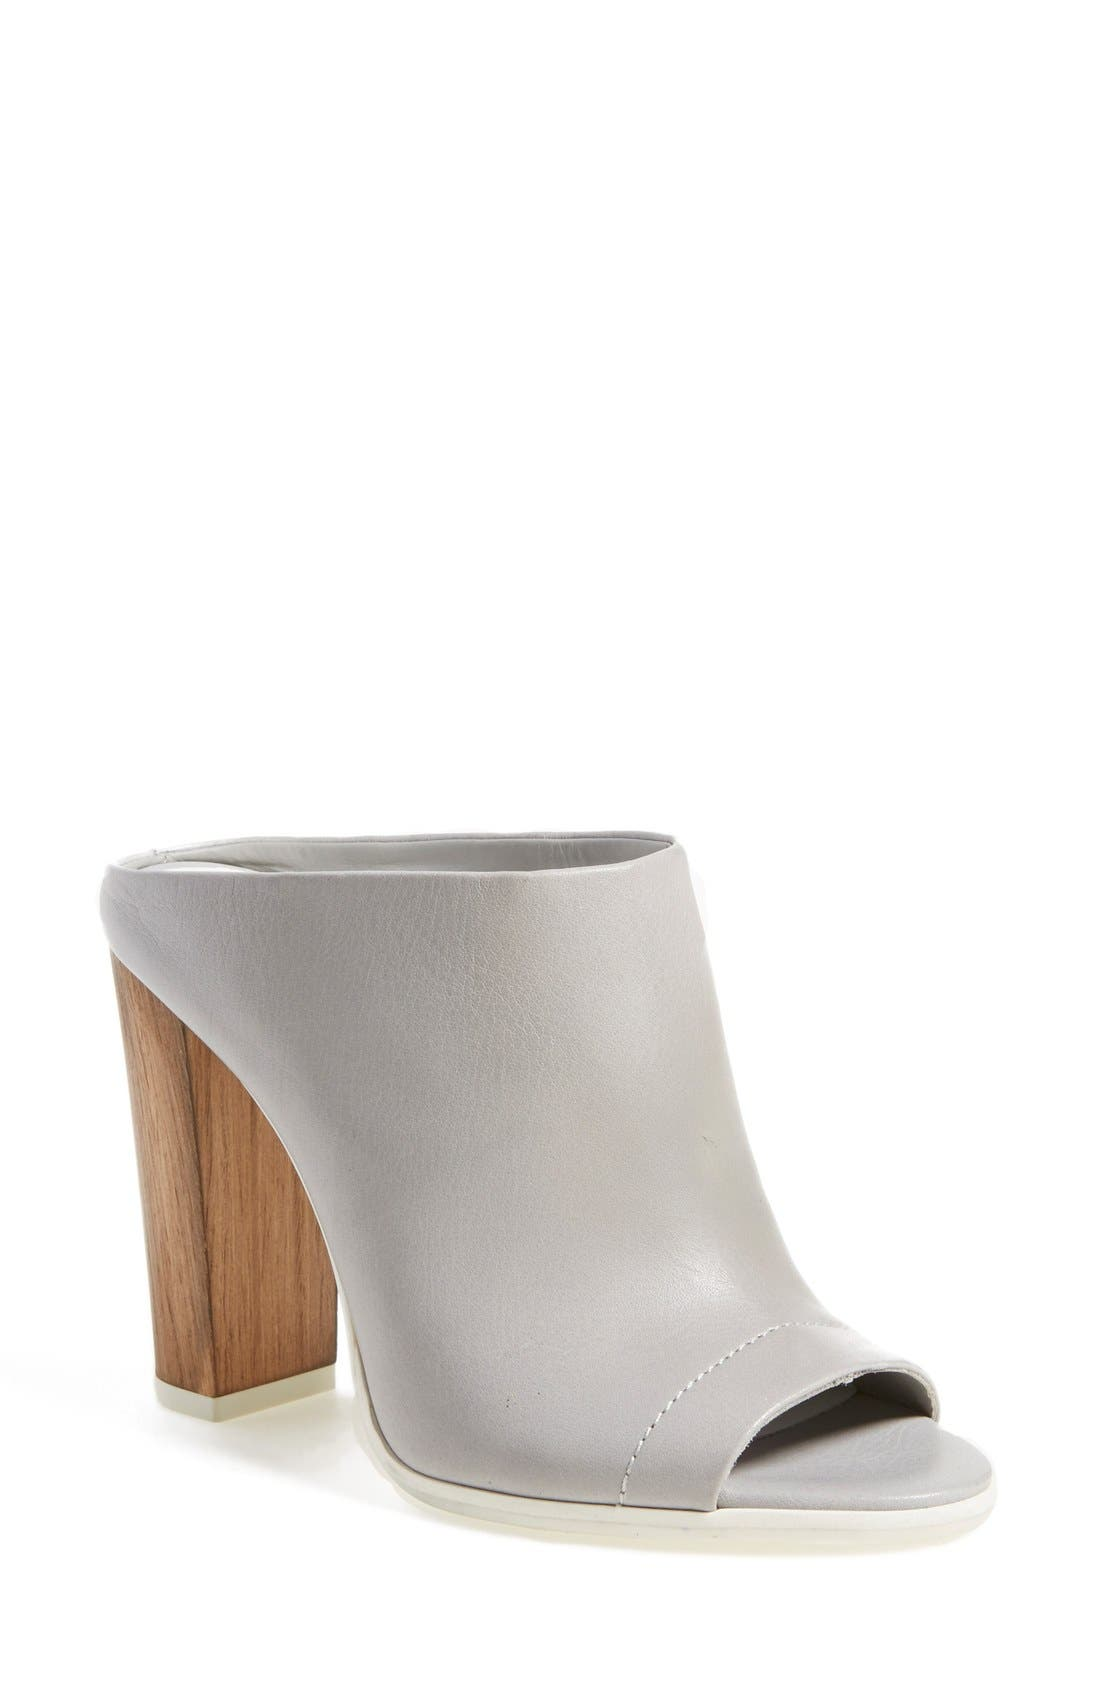 Main Image - Vince 'Allison' Leather Mule Bootie (Women)